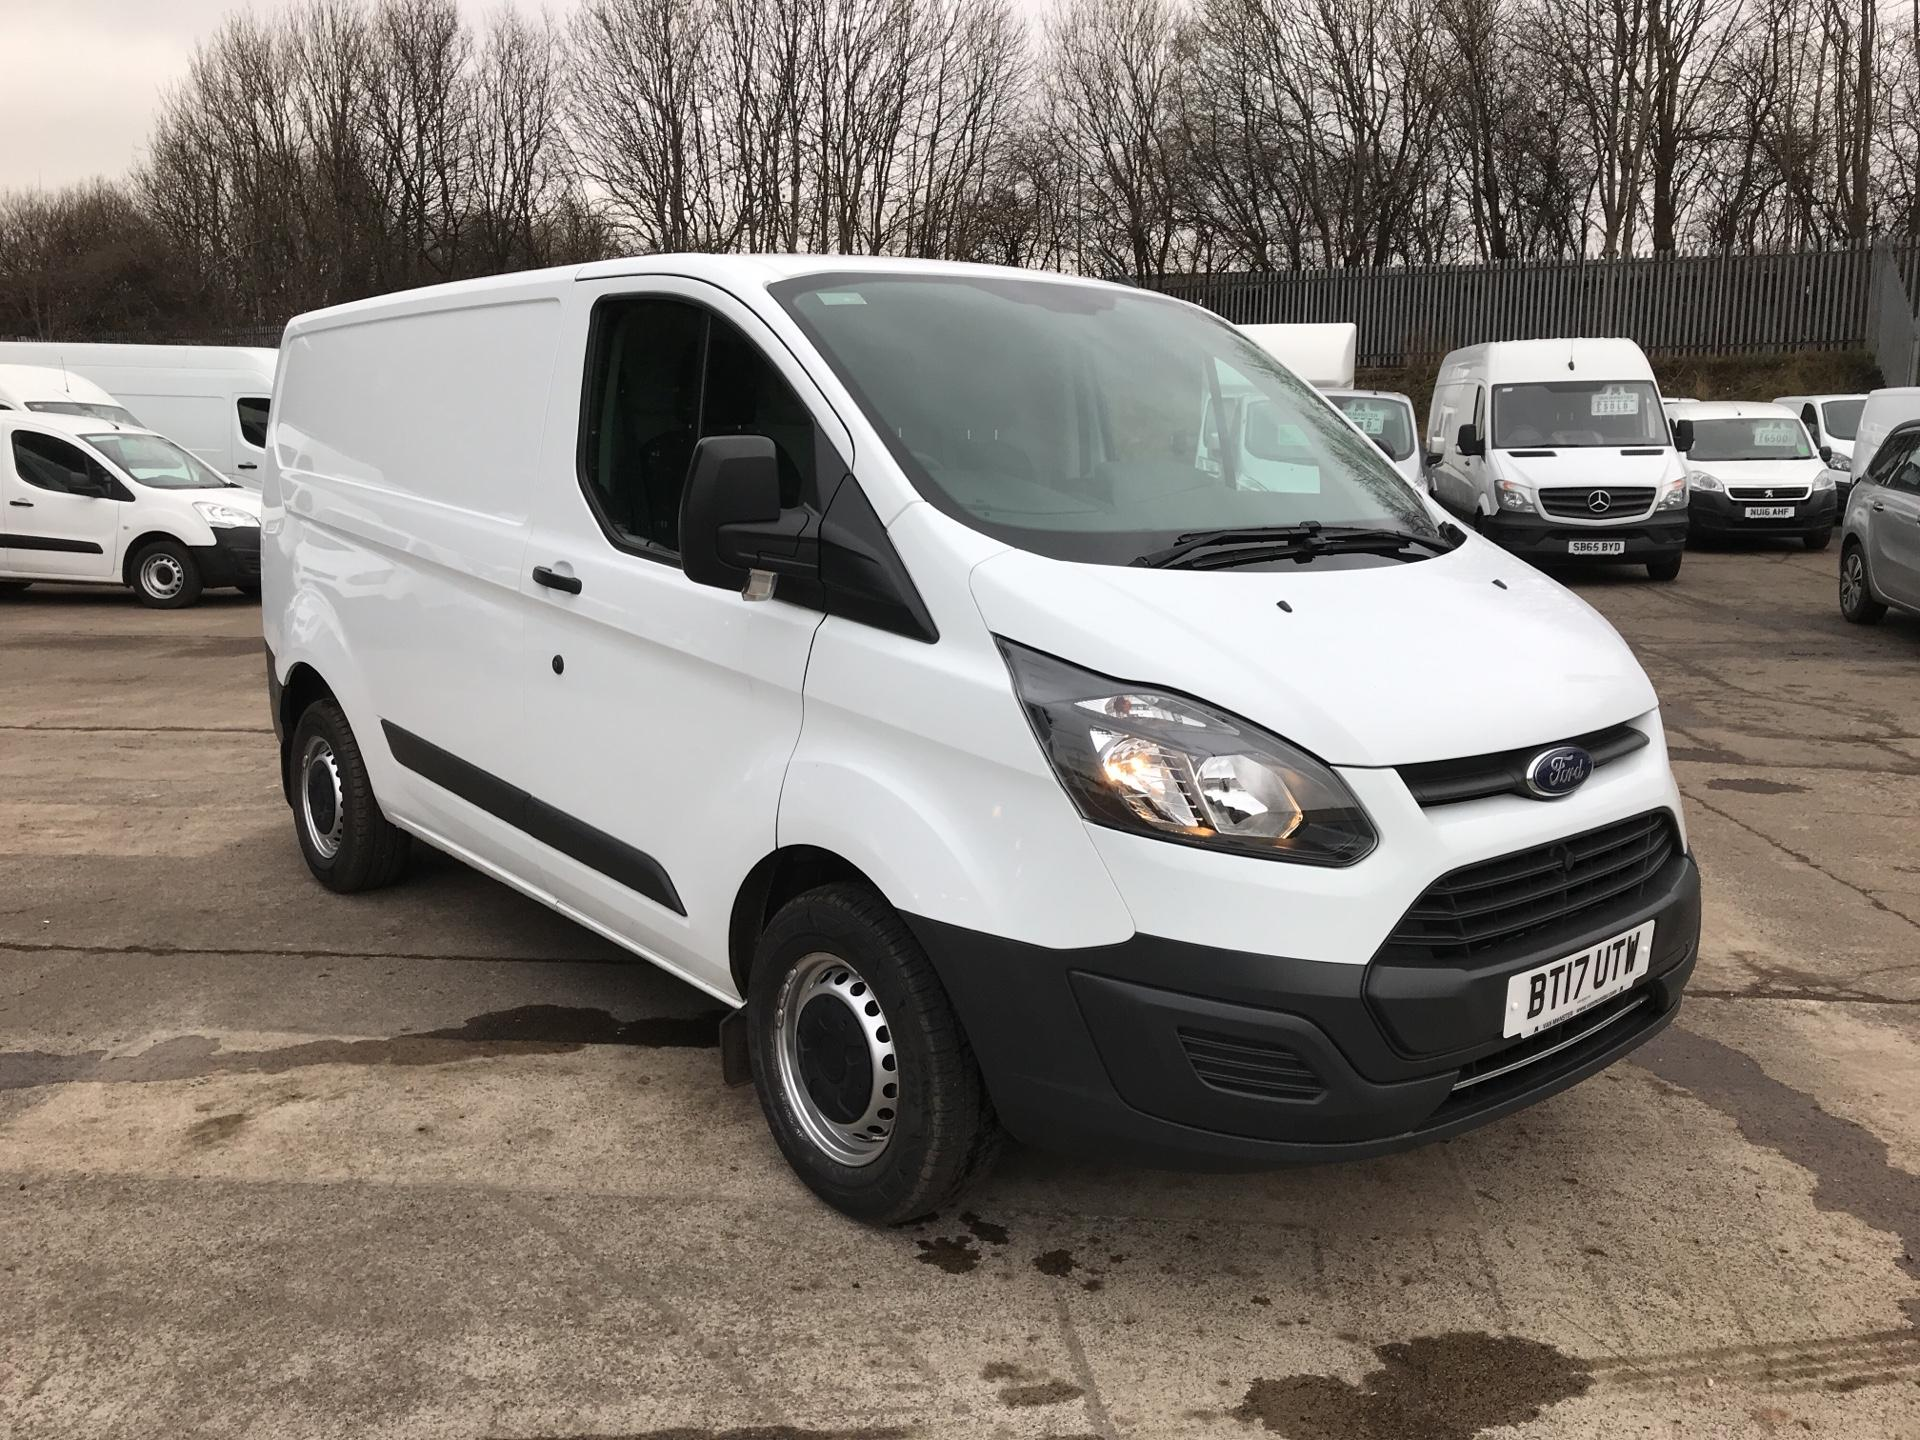 2017 Ford Transit Custom 290 L1 DIESEL FWD 2.0 TDCI 105PS LOW ROOF EURO 6 (BT17UTW)